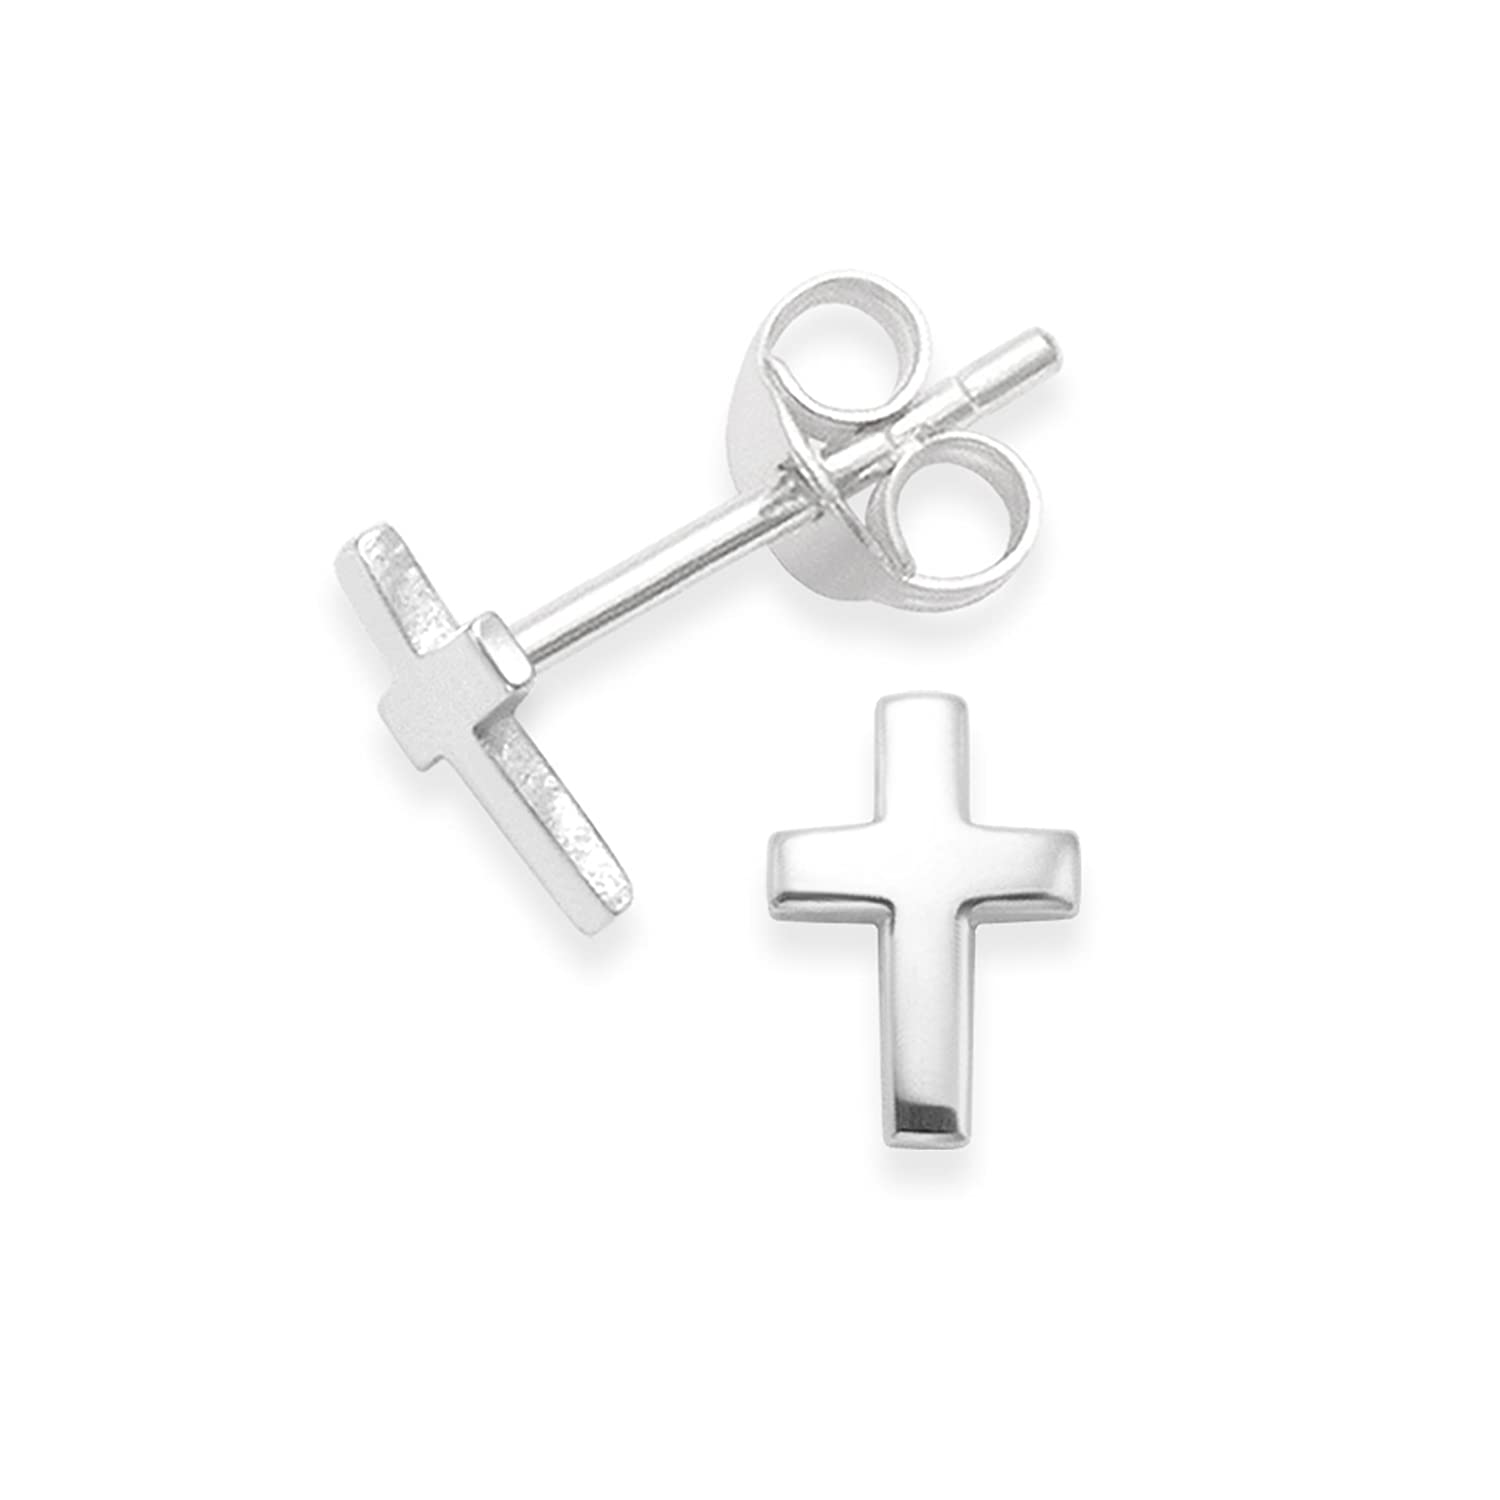 piercings earrings pin and mini stud piercing ear aninebing small cross